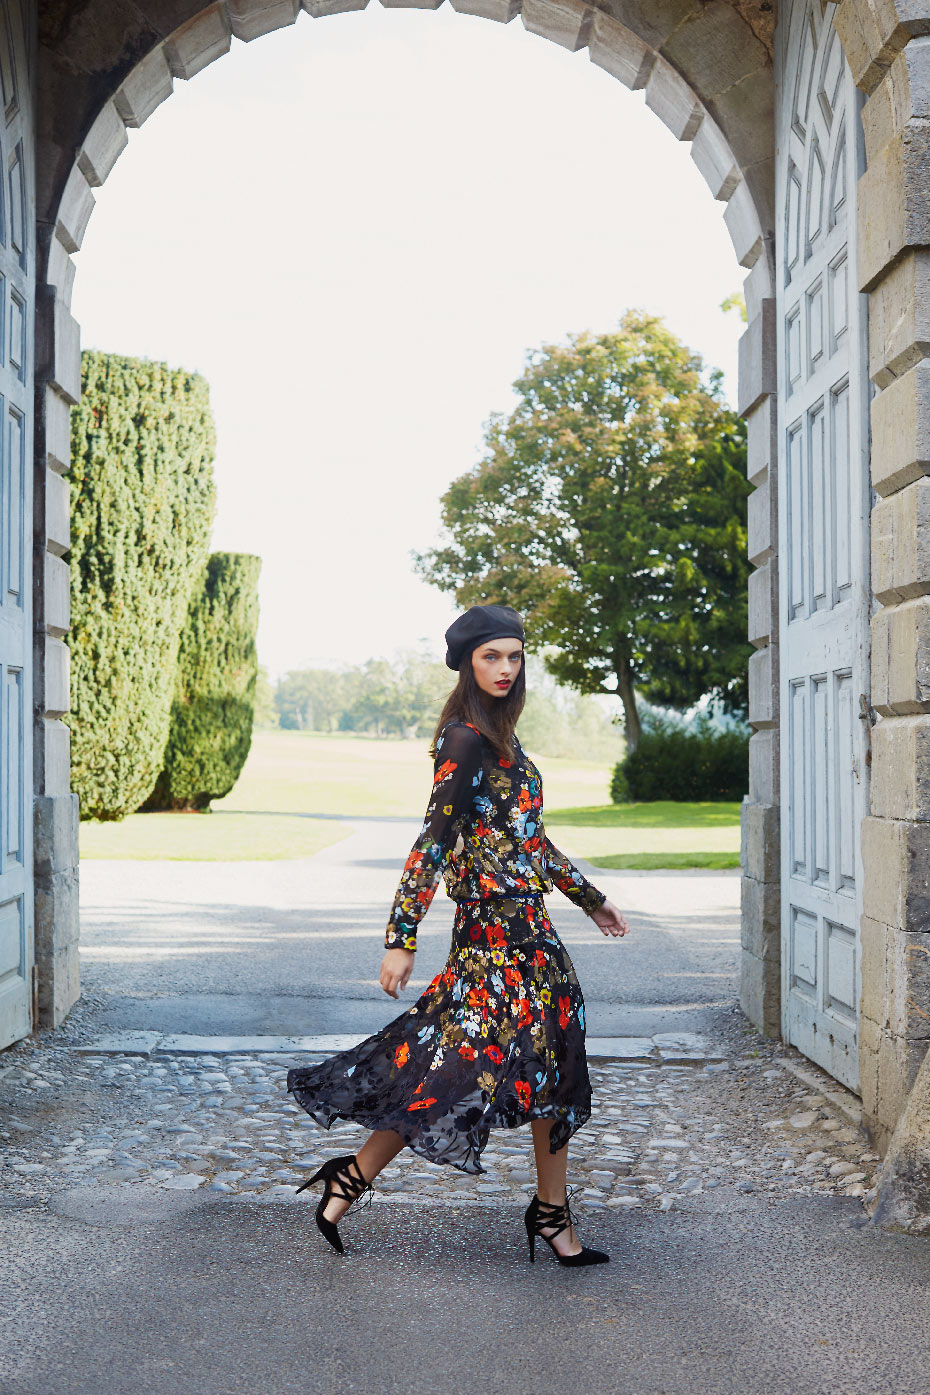 Stacey Van Berkel Photography I Carton House Travel Fashion Shoot I Elegant & French inspired style I Kildare, Ireland